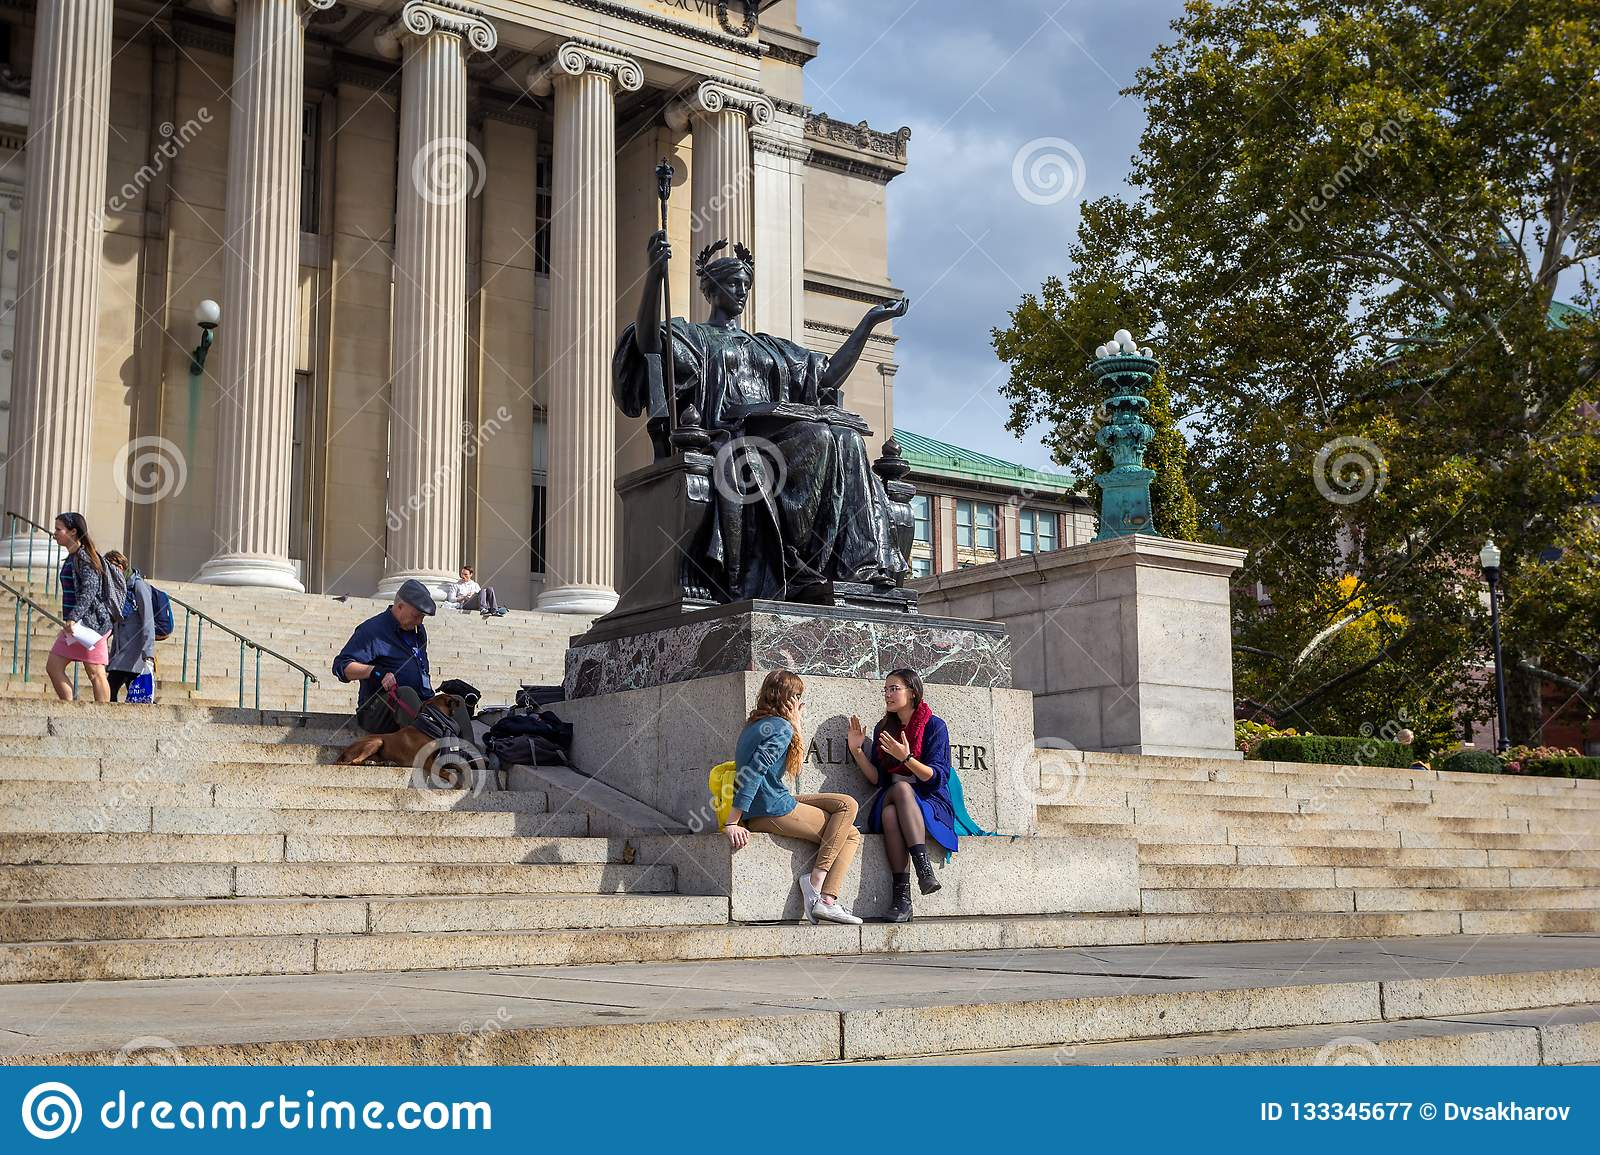 Columbia University Library buildings with columns and Alma Mater statue